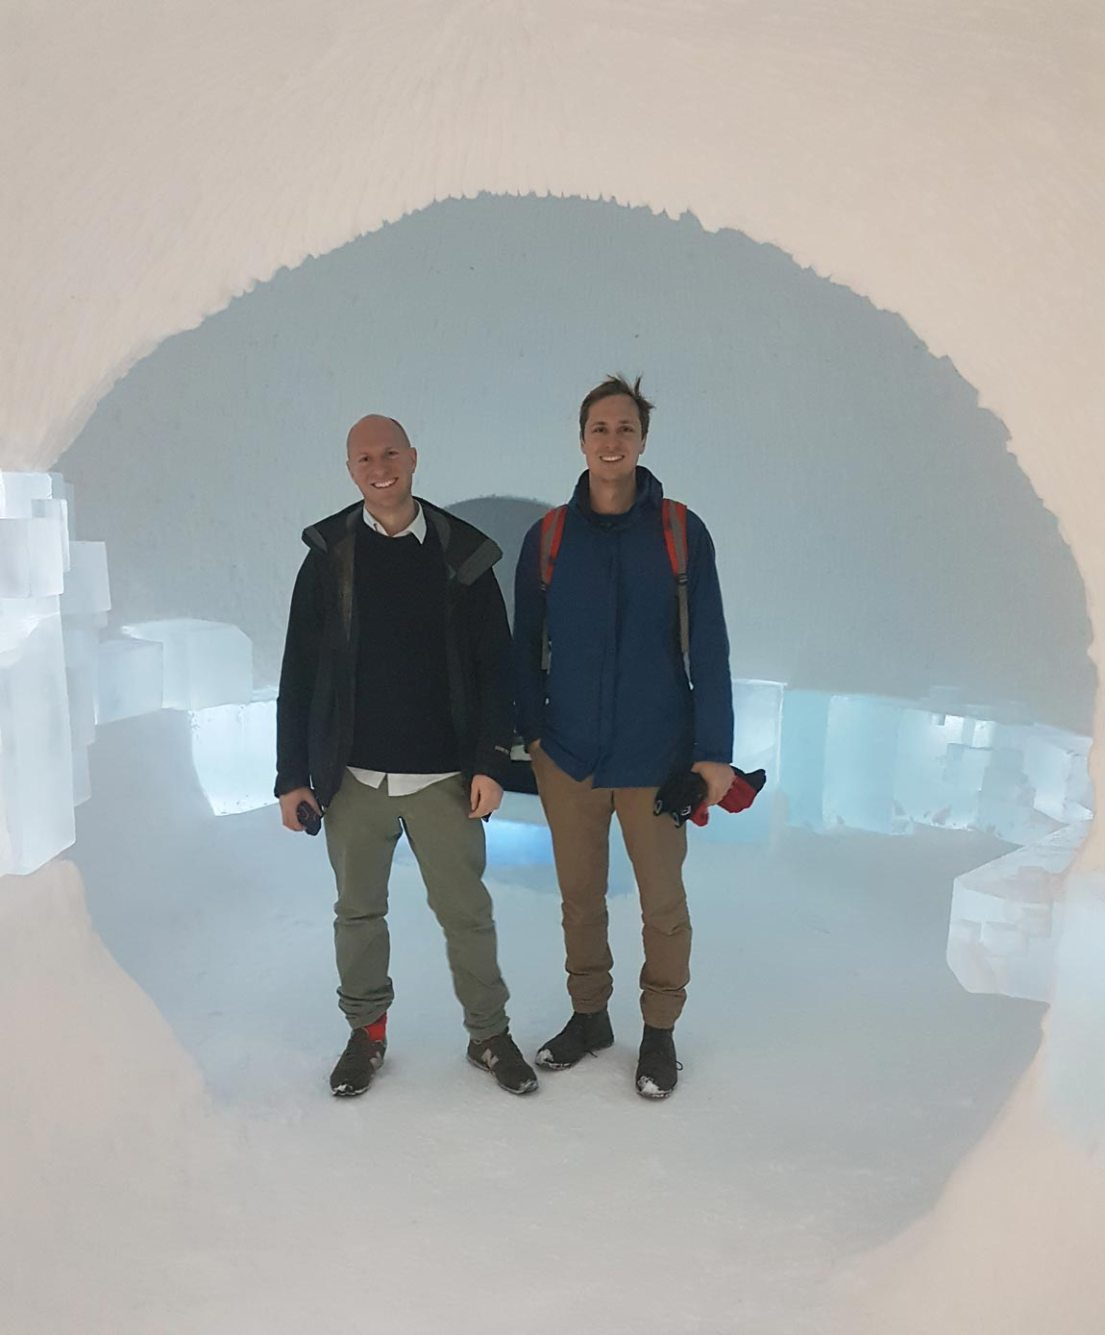 Brothers Hugh and Howard Miller from the UK, working as furniture and landscape designers respectively. Their design, A Rich Seam, won the hearts of the ICEHOTEL judging panel. They spent 6 weeks at the end of 2017 making their design a reality in Swedish Lapland.